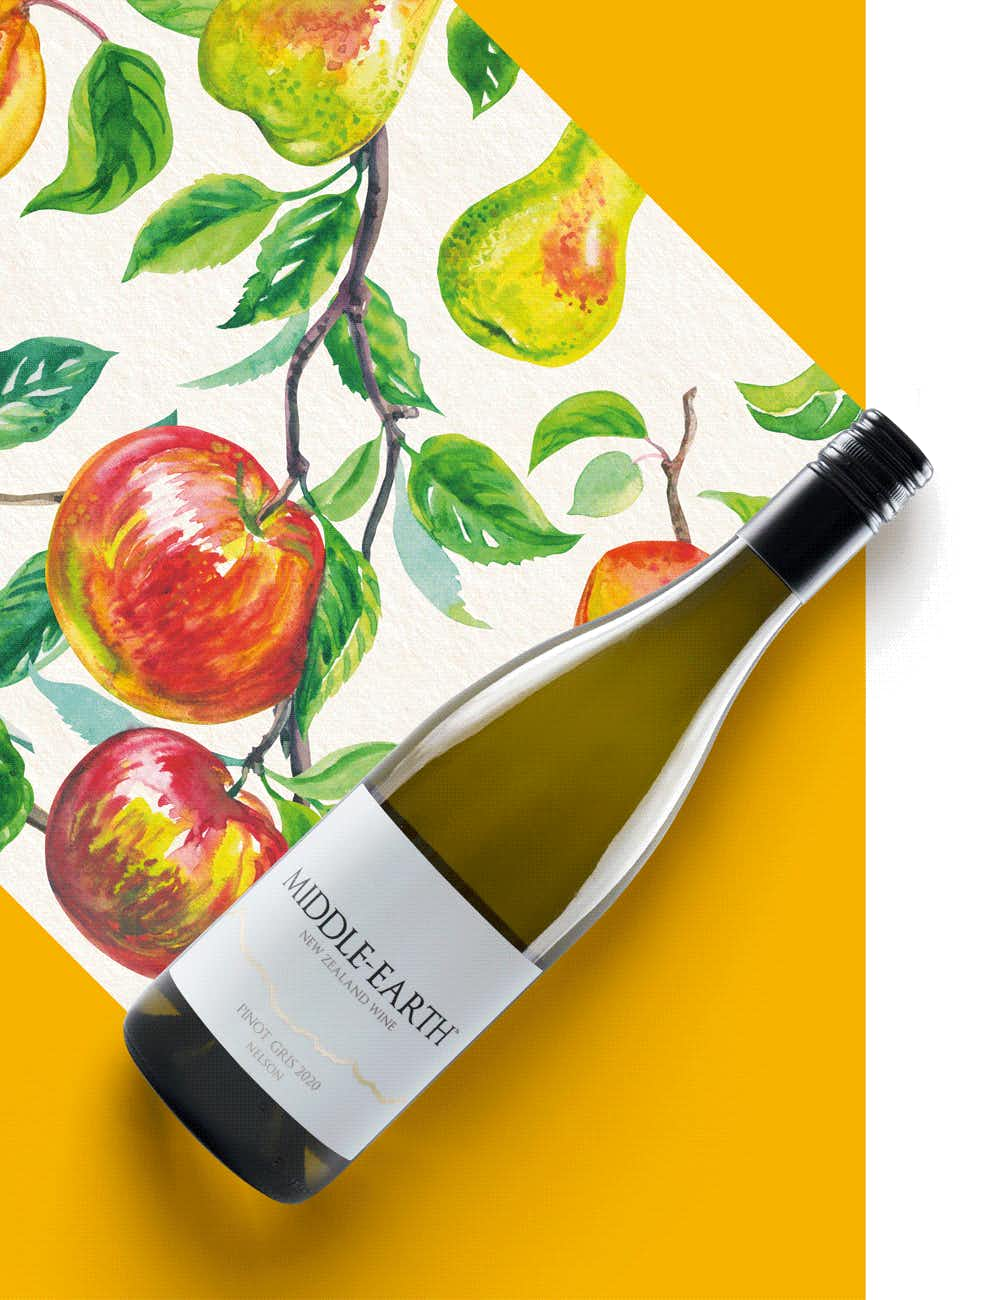 Middle-Earth Wines Pinot Gris 2020